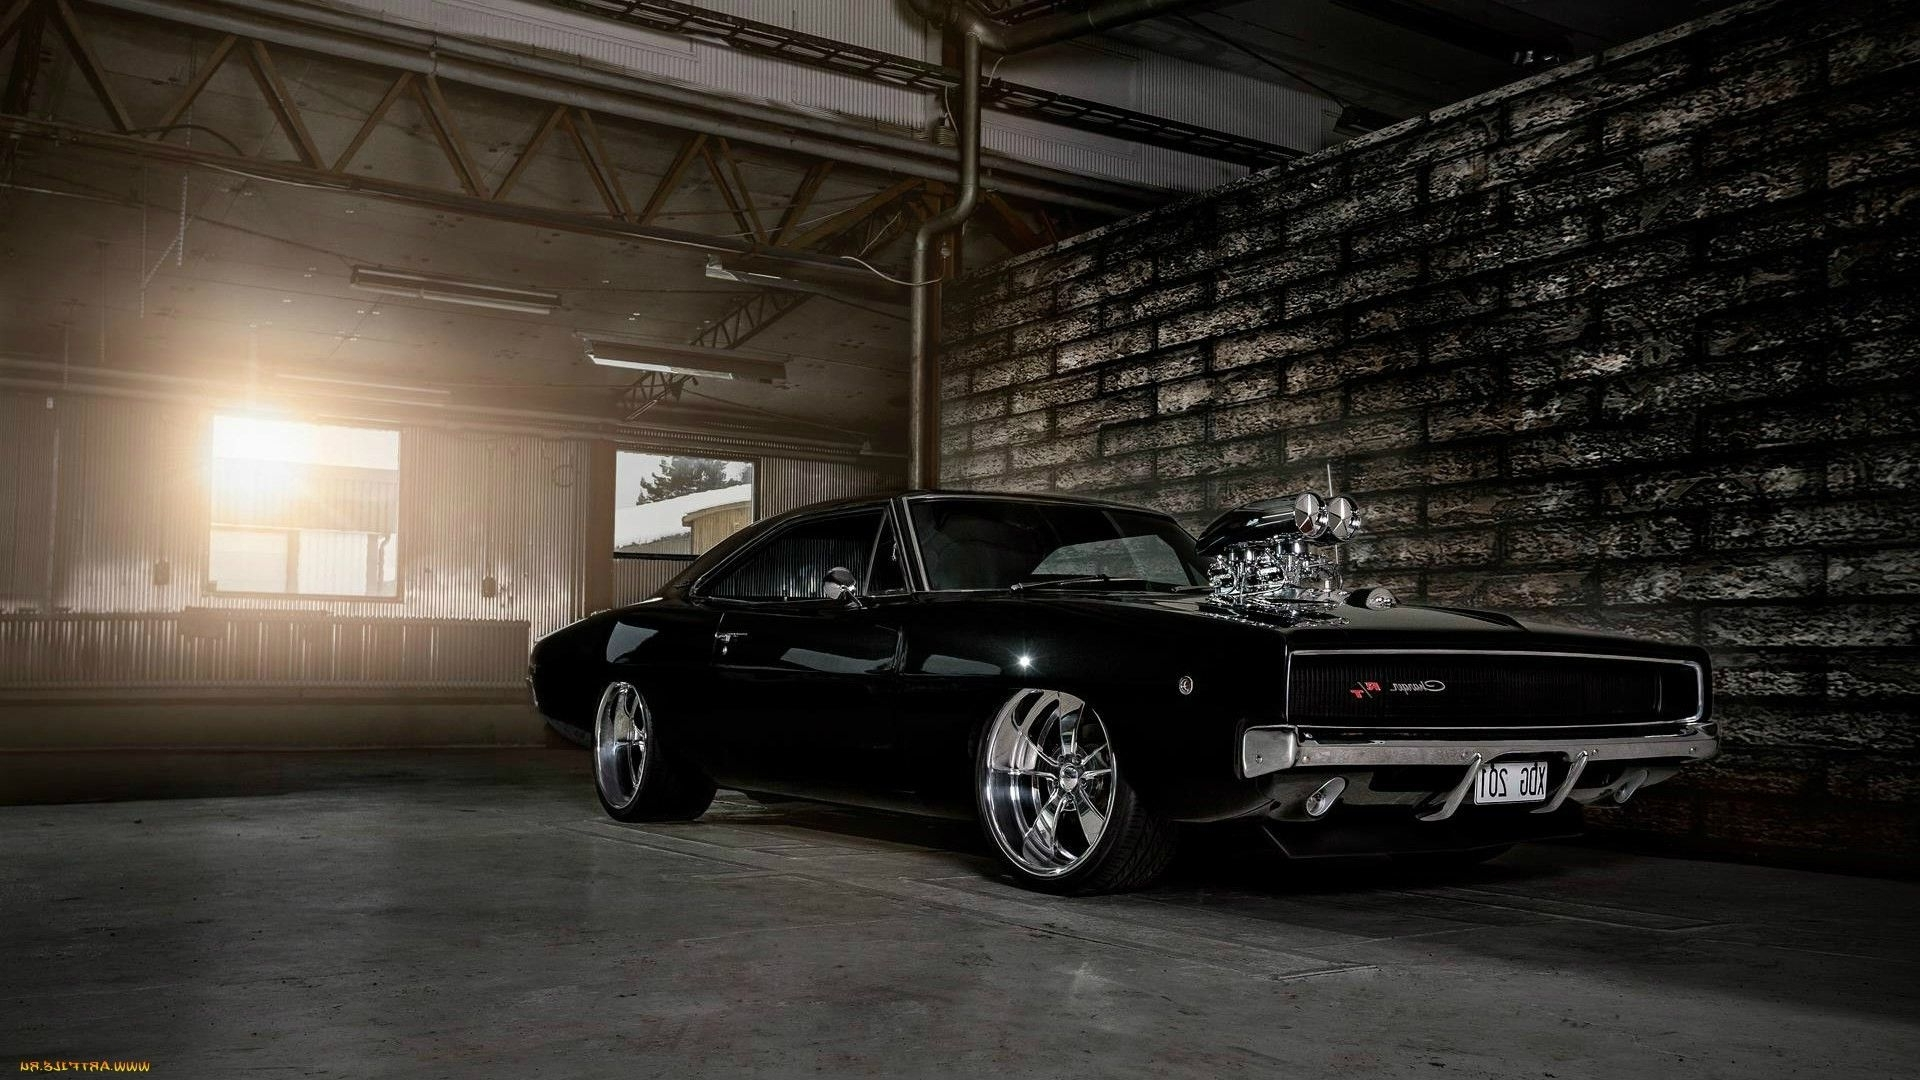 Collection of Dodge Charger Wallpaper on HDWallpapers 1920x1080